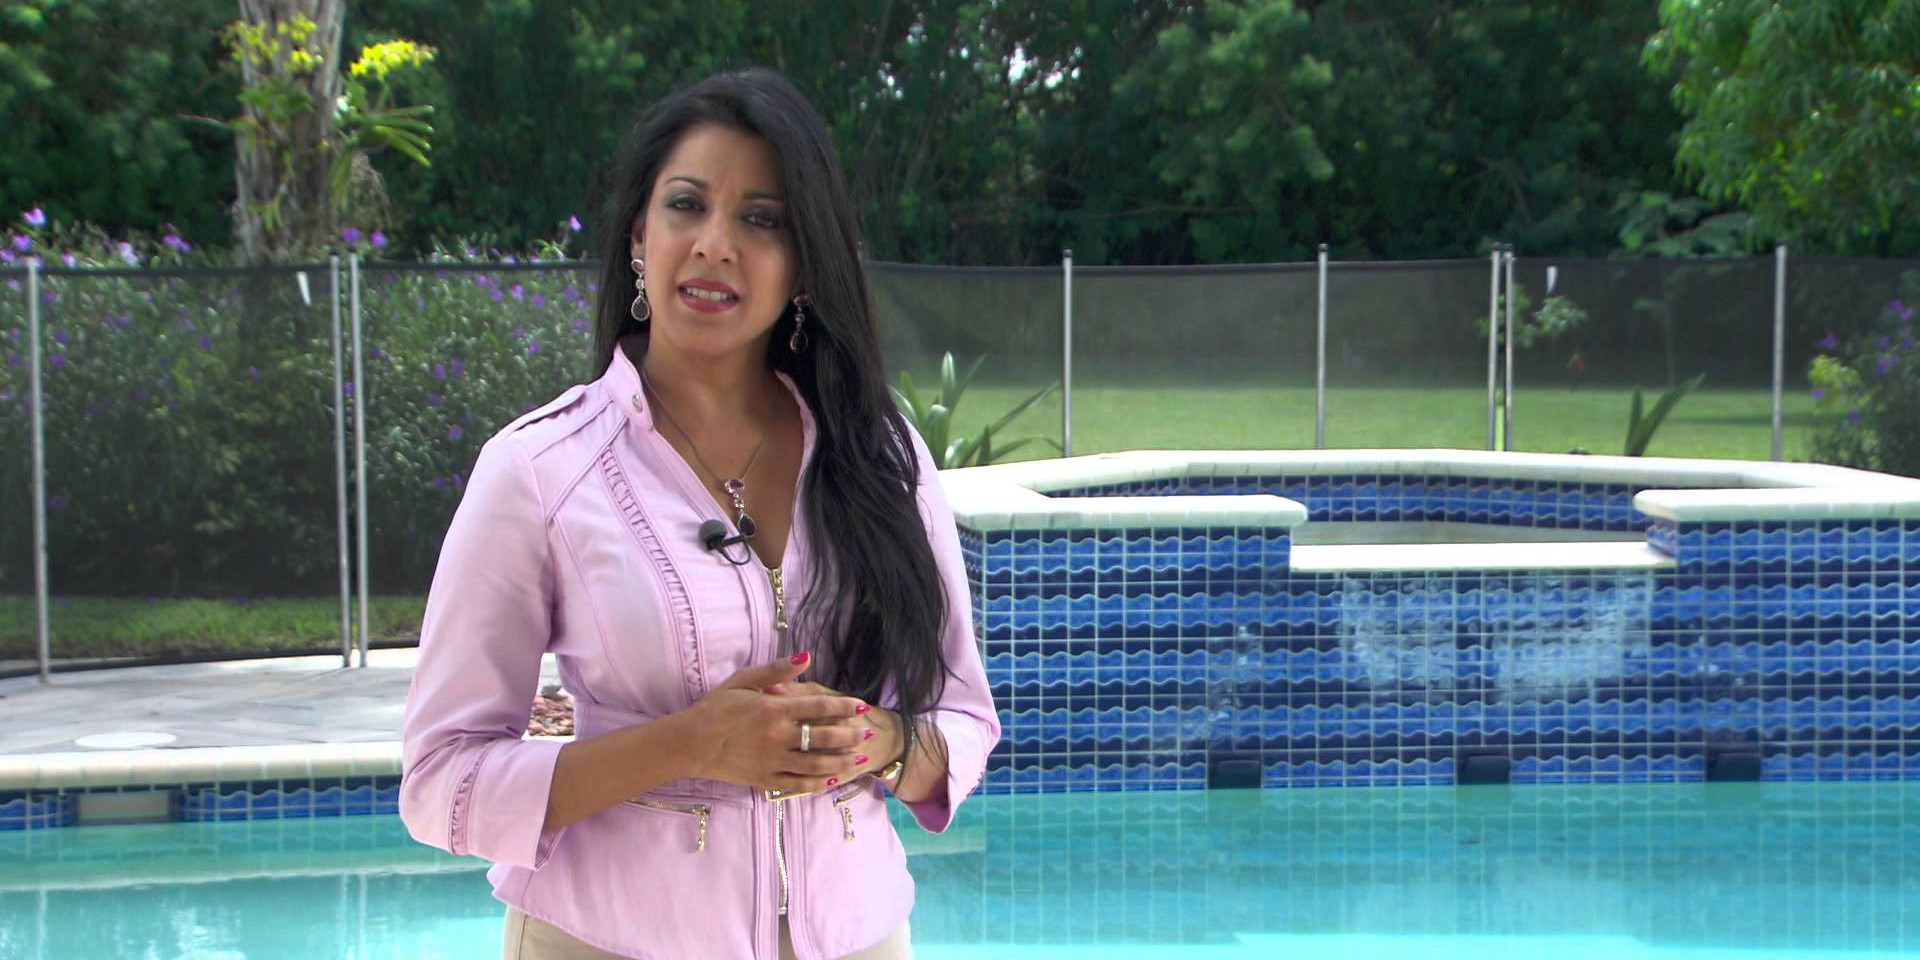 Water Safety in Pools & Spas